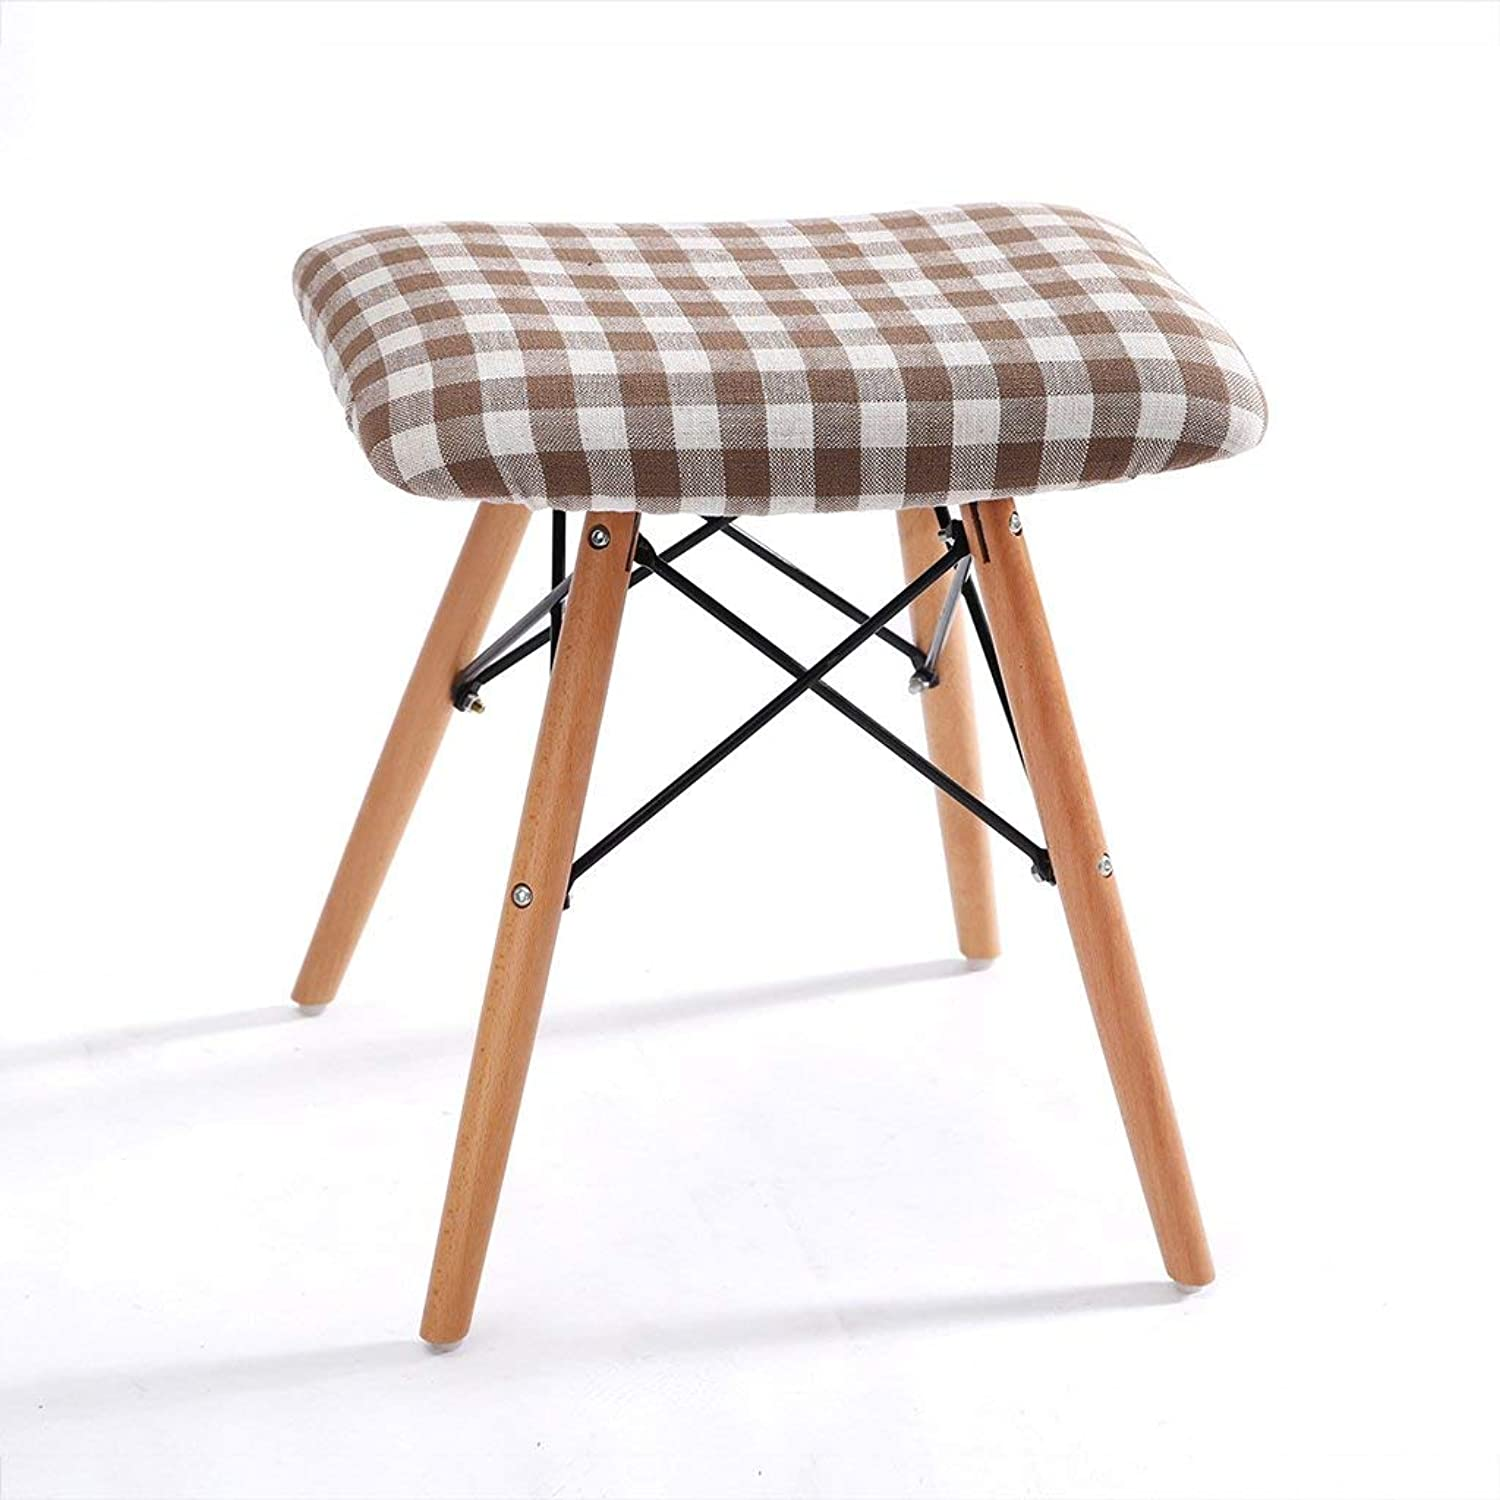 Ronggoutrade Solid Wood Dining Stool, Fabric Washable Chair, Modern Leisure Computer Chair, Home Stool - Small Stool (color   D)